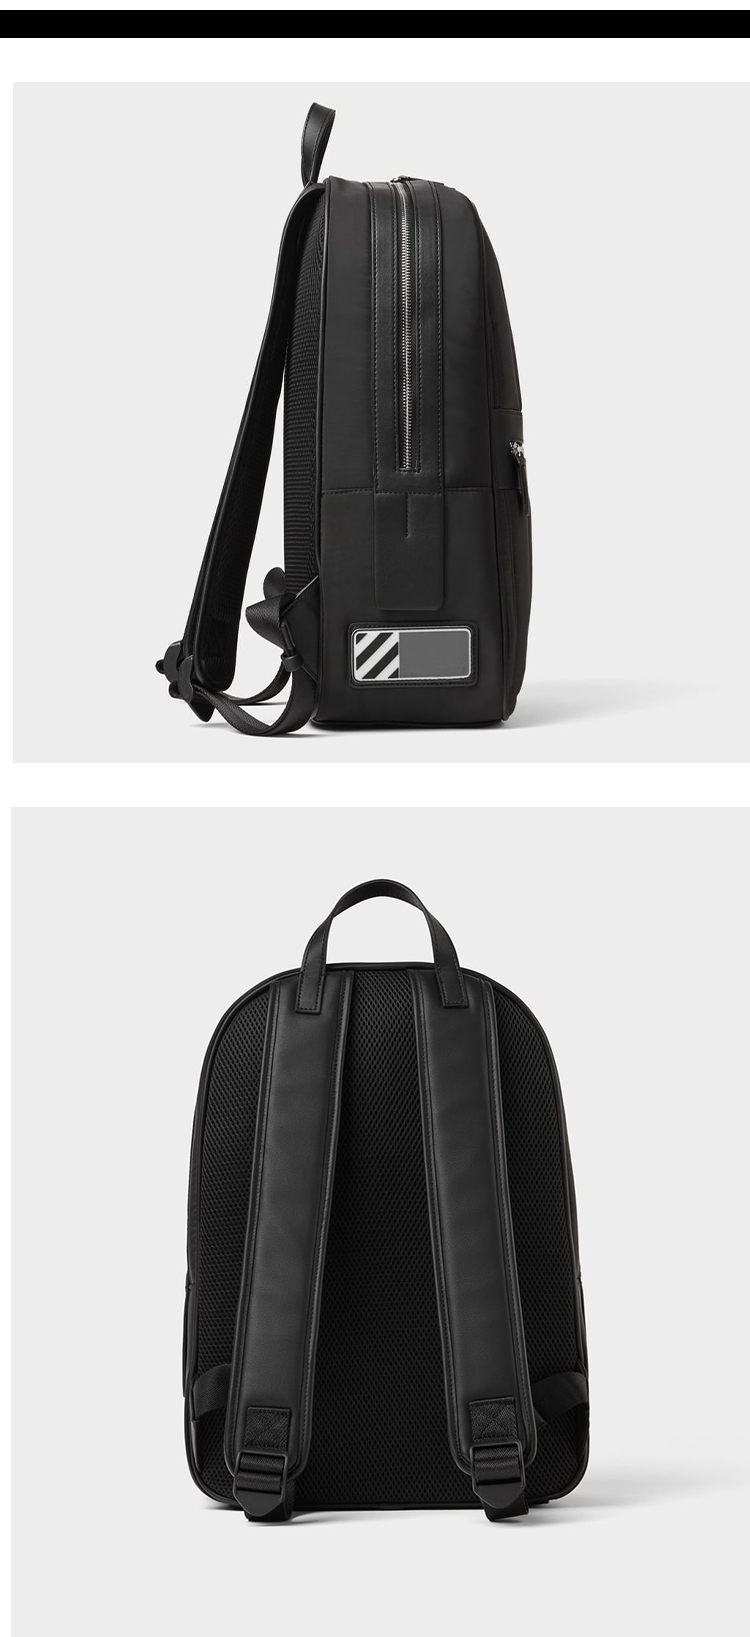 leather-man-backpack4_02